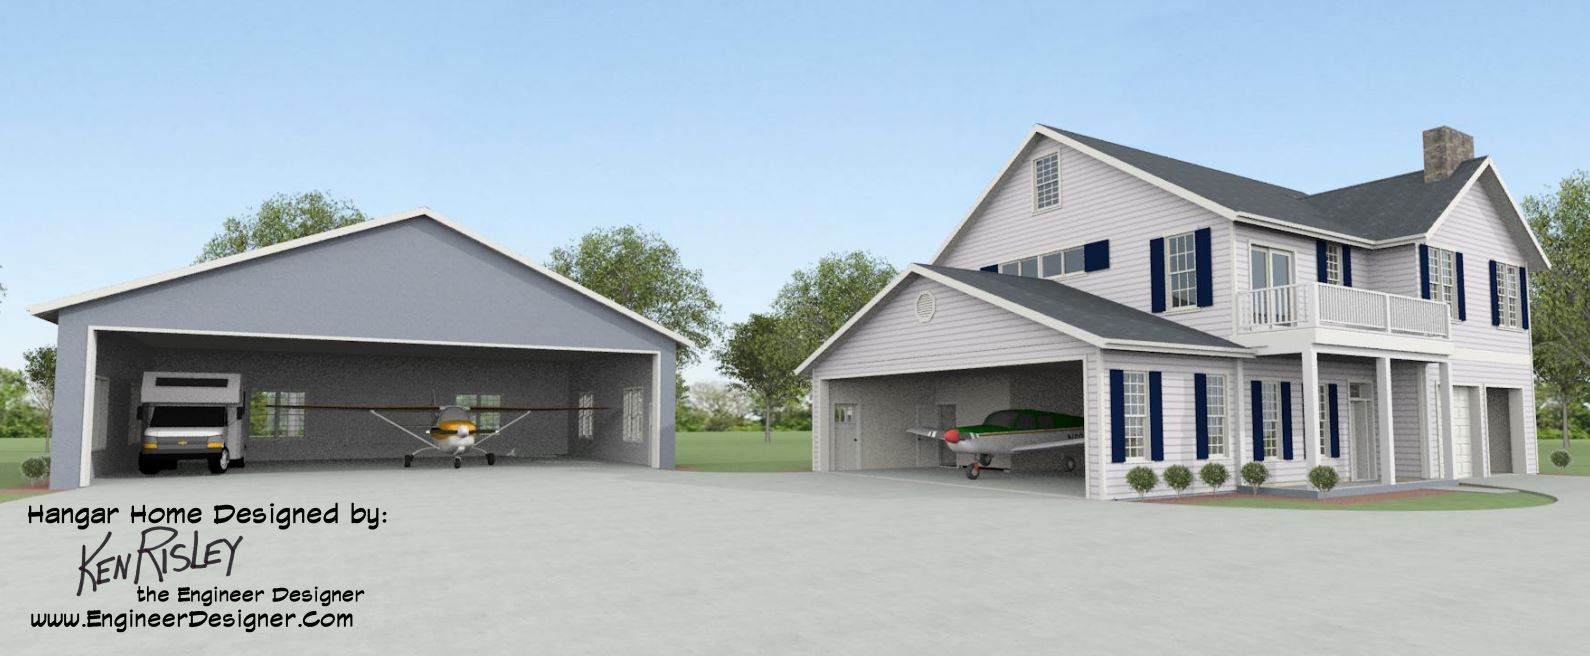 When Considering A Hangar Home Design These Points Should Be Kept ...